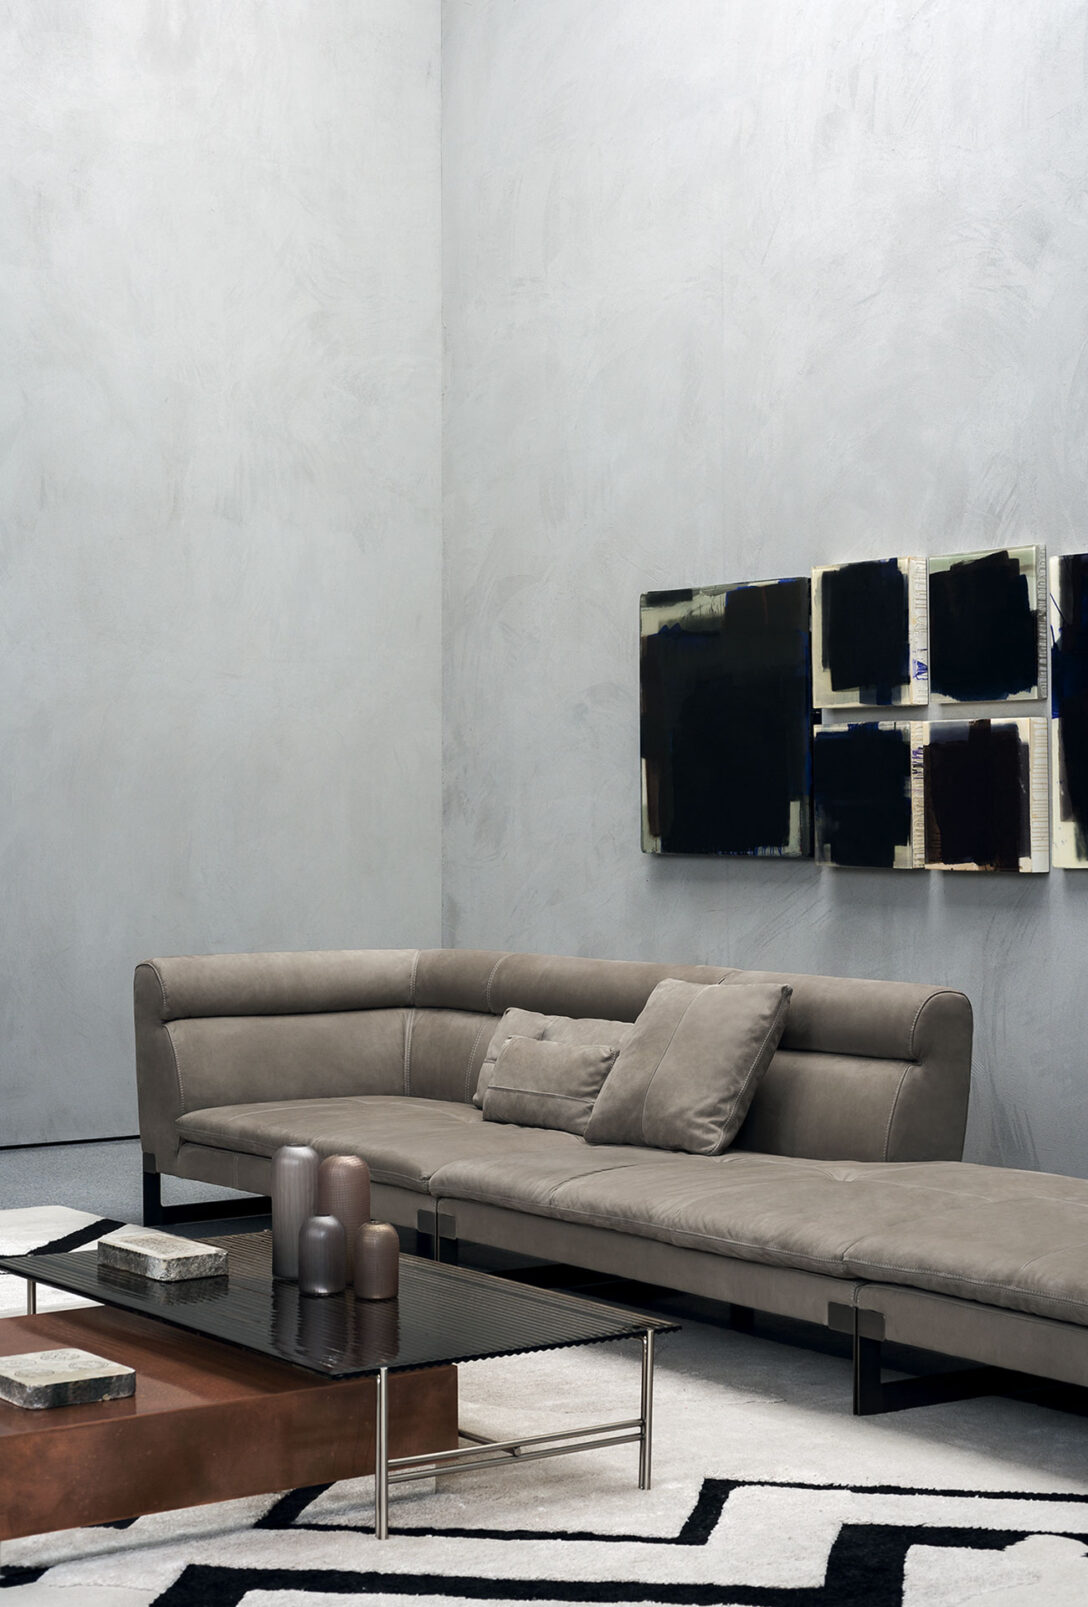 Large Size of Baxter Sofa Criteria Collection Furniture List Paola Navone Couch Ez Living Jonathan Adler Chester Moon Cena Tactile Viktor Leather Hussen Für Chesterfield Sofa Baxter Sofa